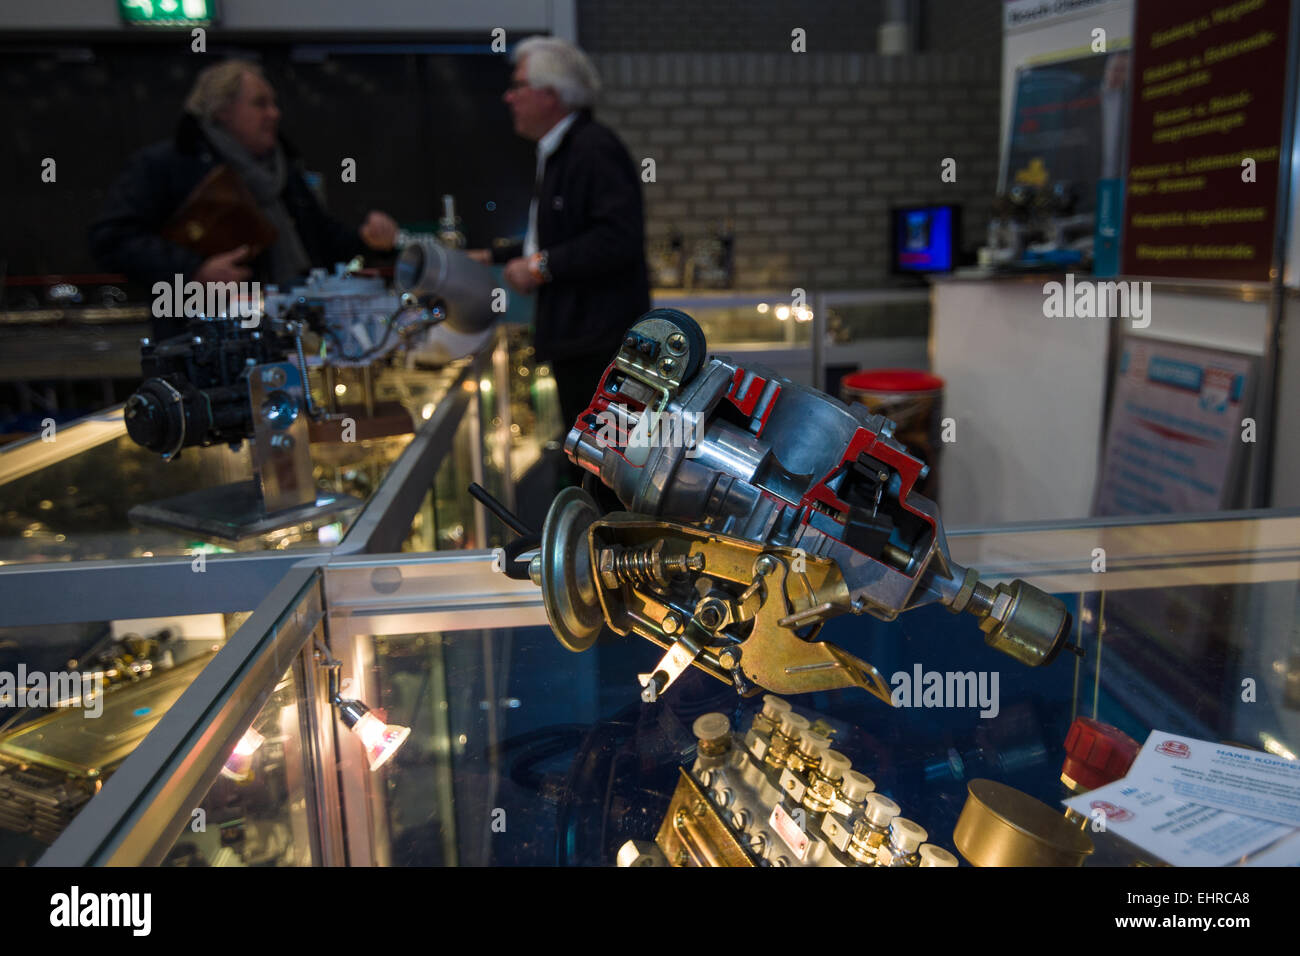 Stand of the firm for the sale of spare parts for oldtimers. In the foreground is the distributor of ignition. - Stock Image